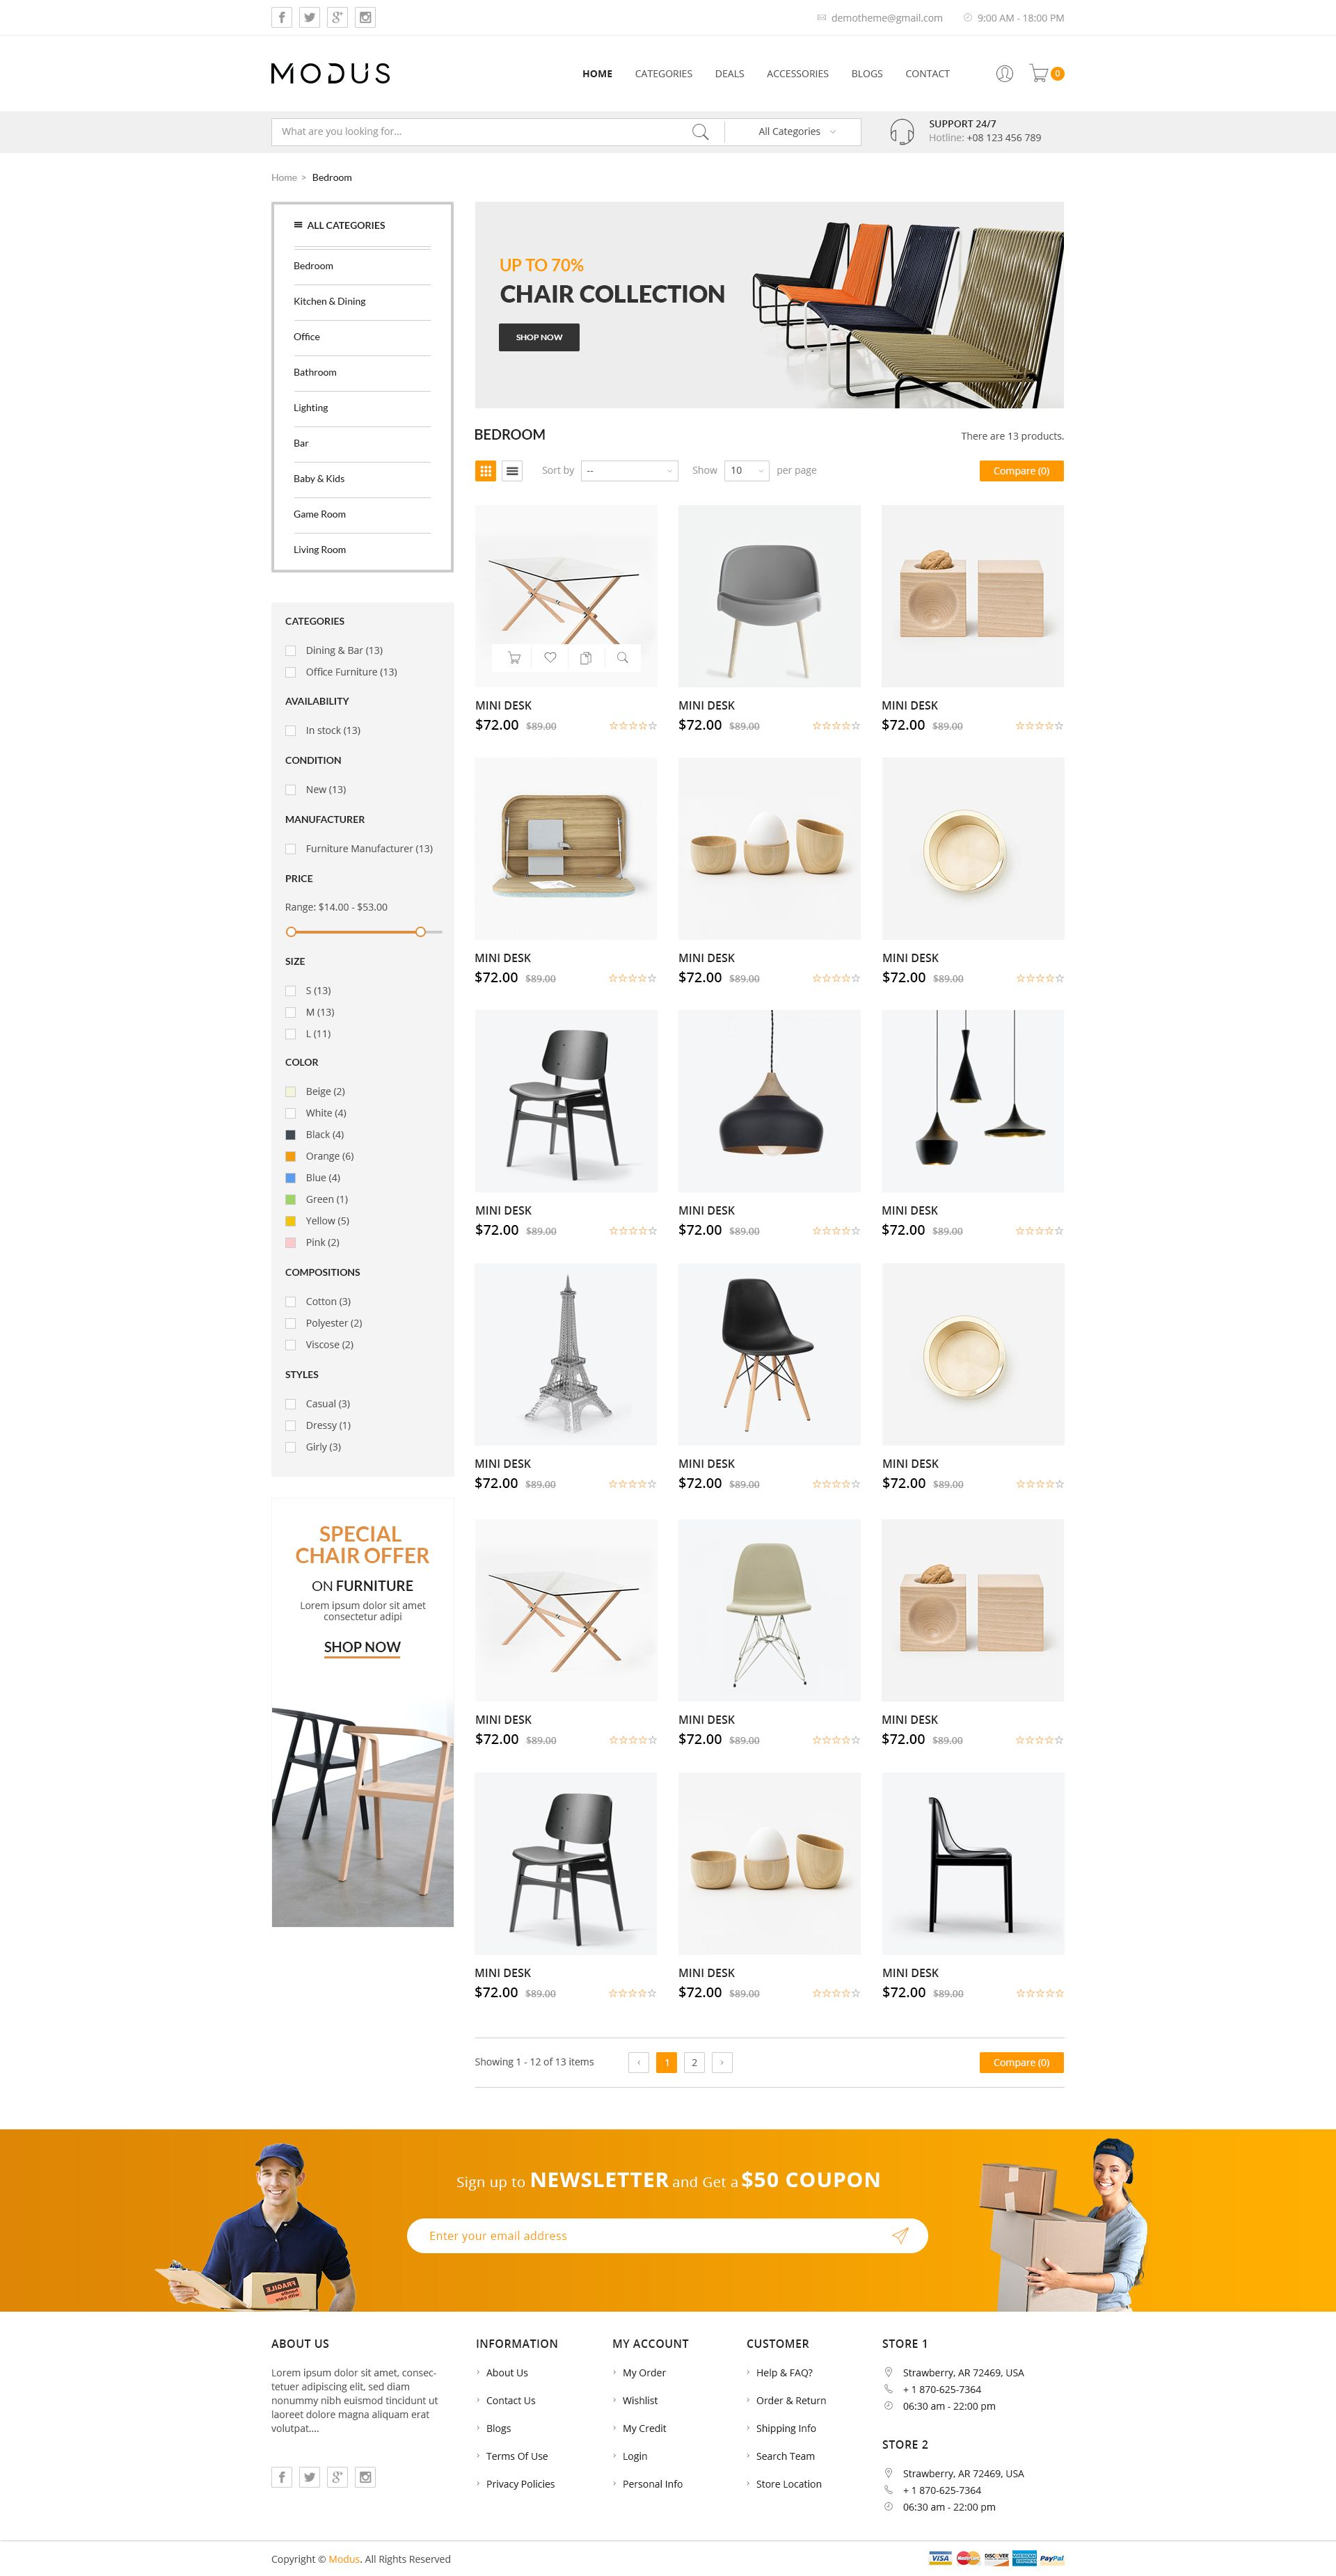 modus - ecommerce psd template #ecommerce, #modus, #template, #psd